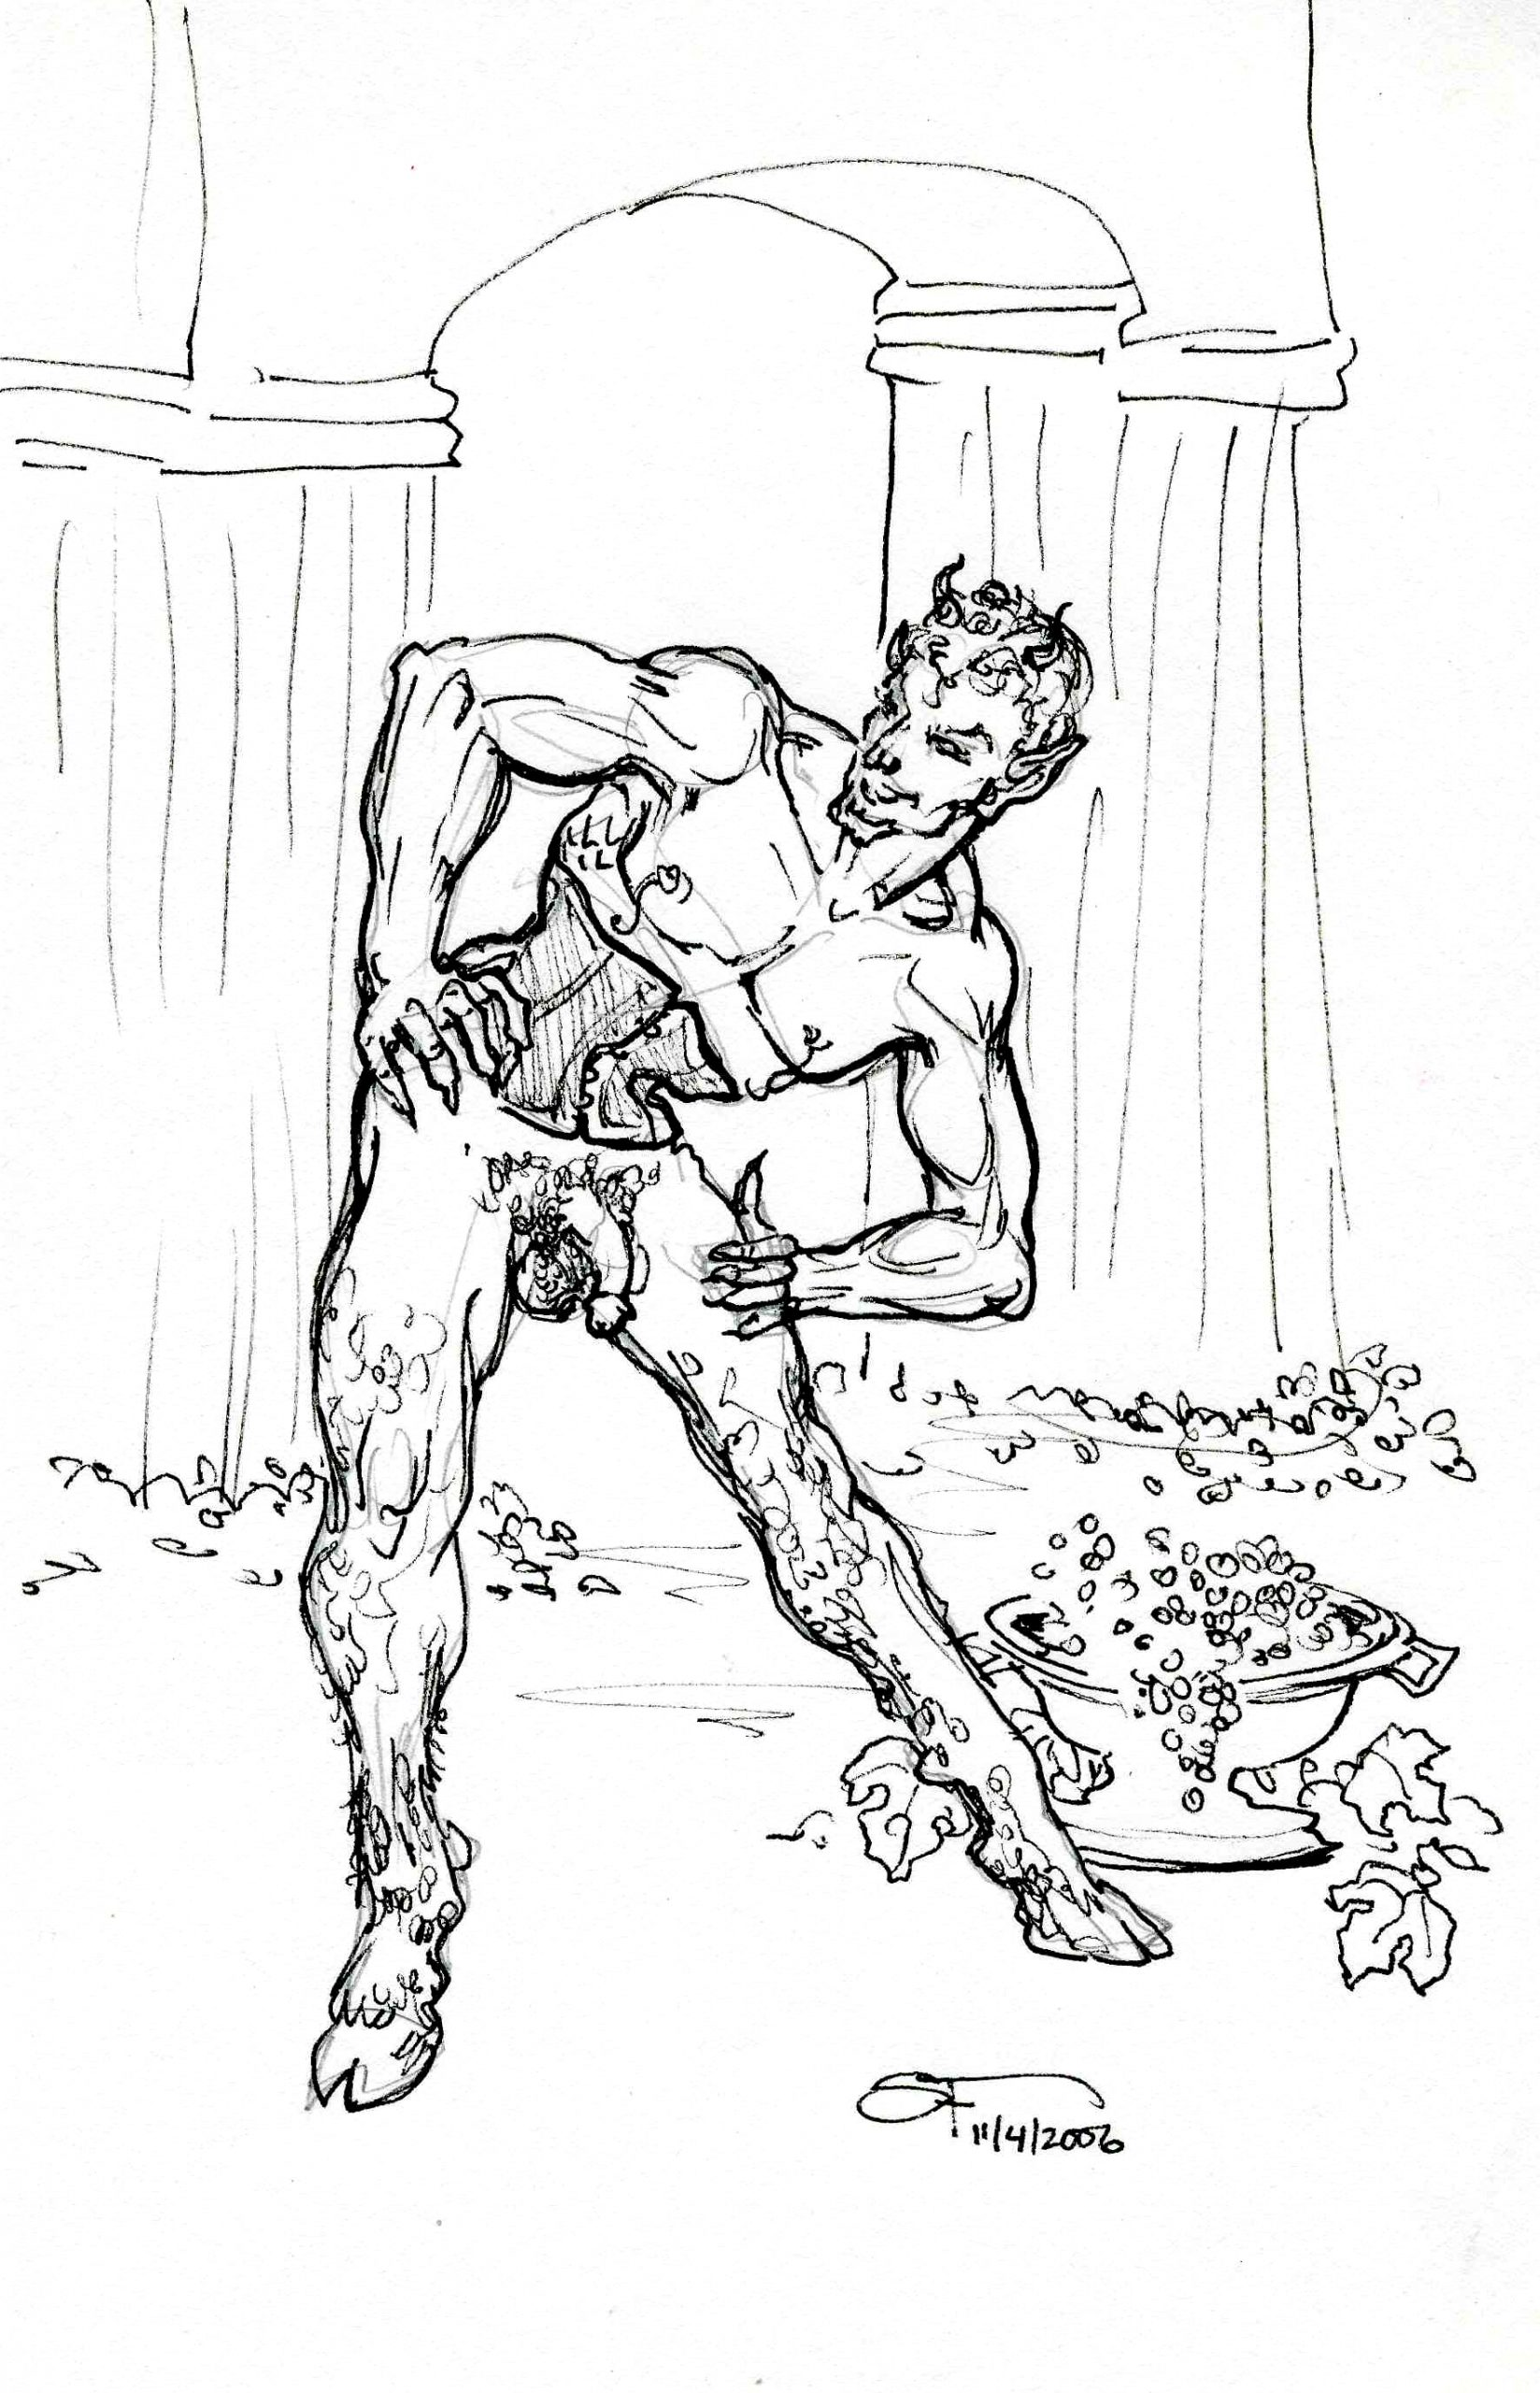 Naughty Faun with Cincher 6x8 11 7 2006 by Suzanne Forbes